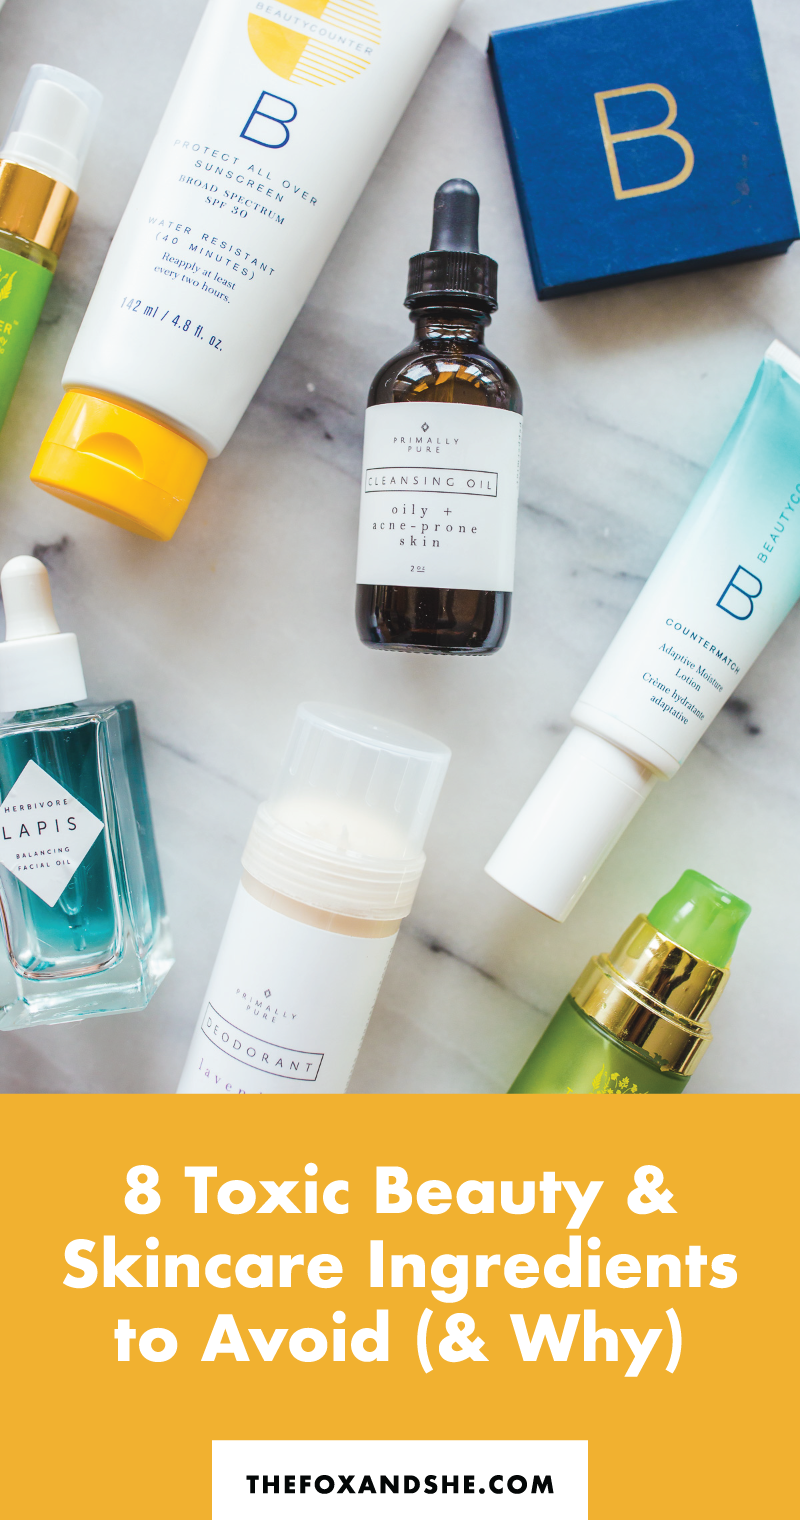 8 Toxic Skincare Ingredients to Avoid in 2020 (With images